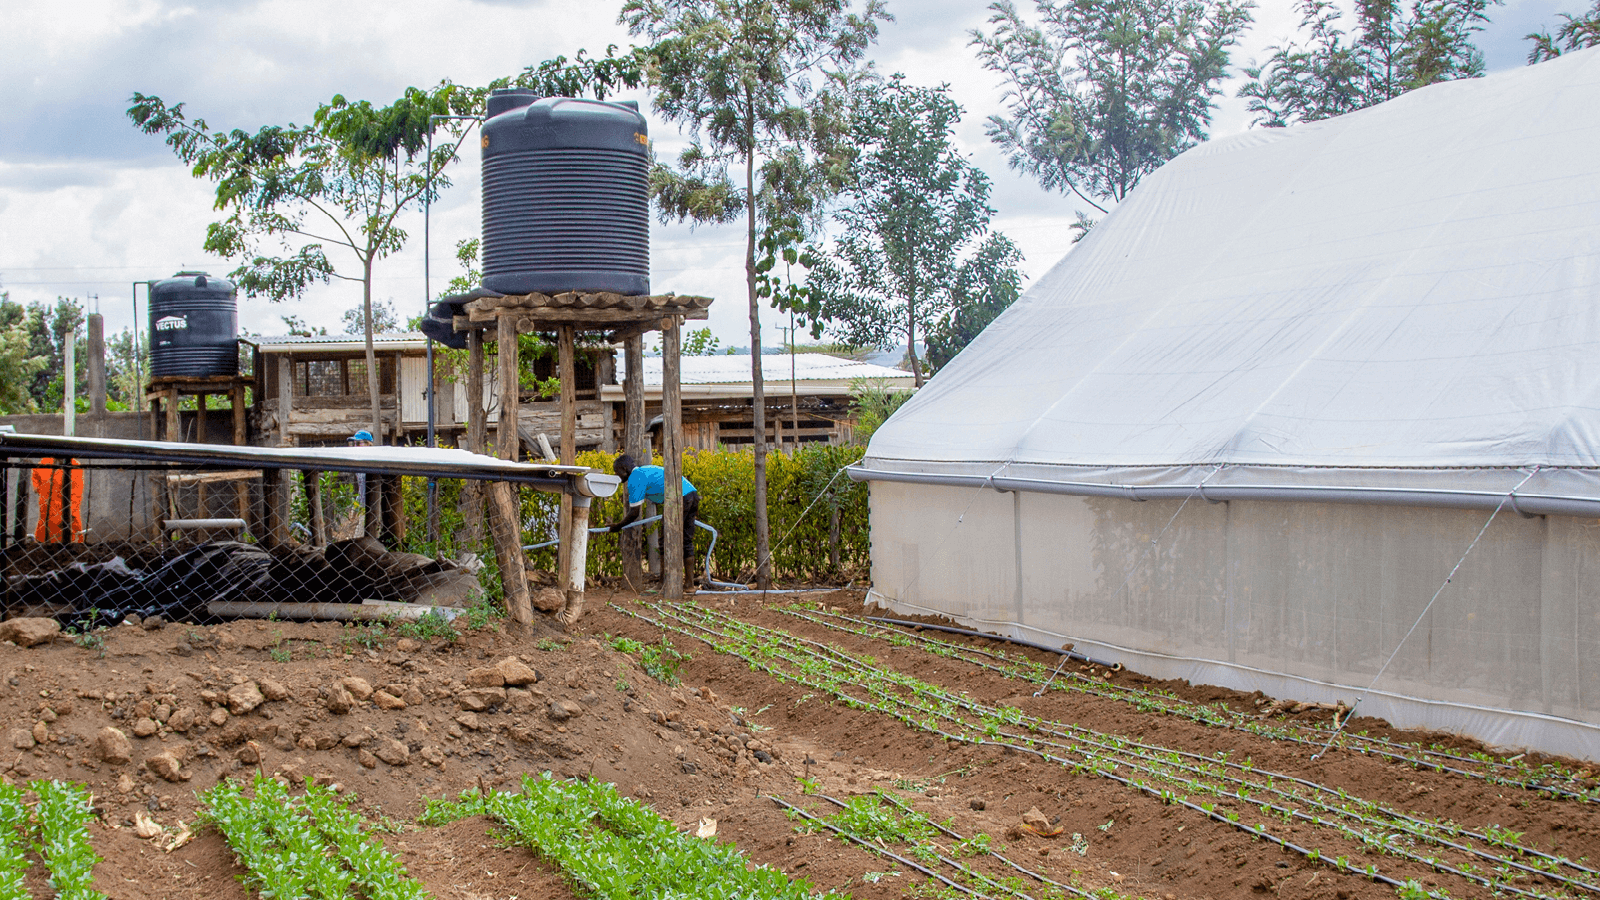 Tank supplying water to greenhouse and drip irrigation